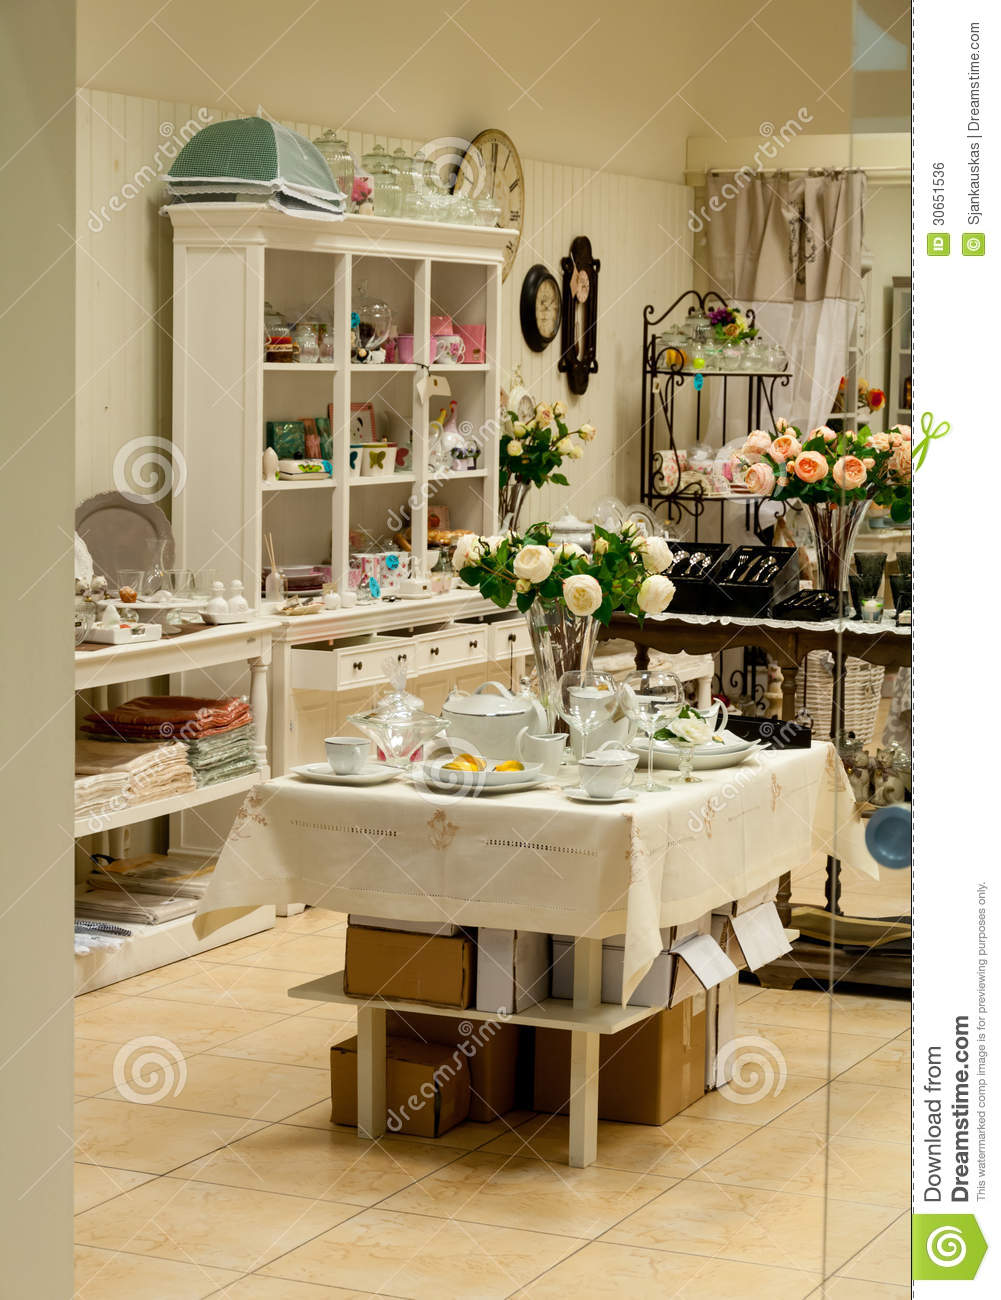 Home decor and dishes shop royalty free stock image for Shopping for home